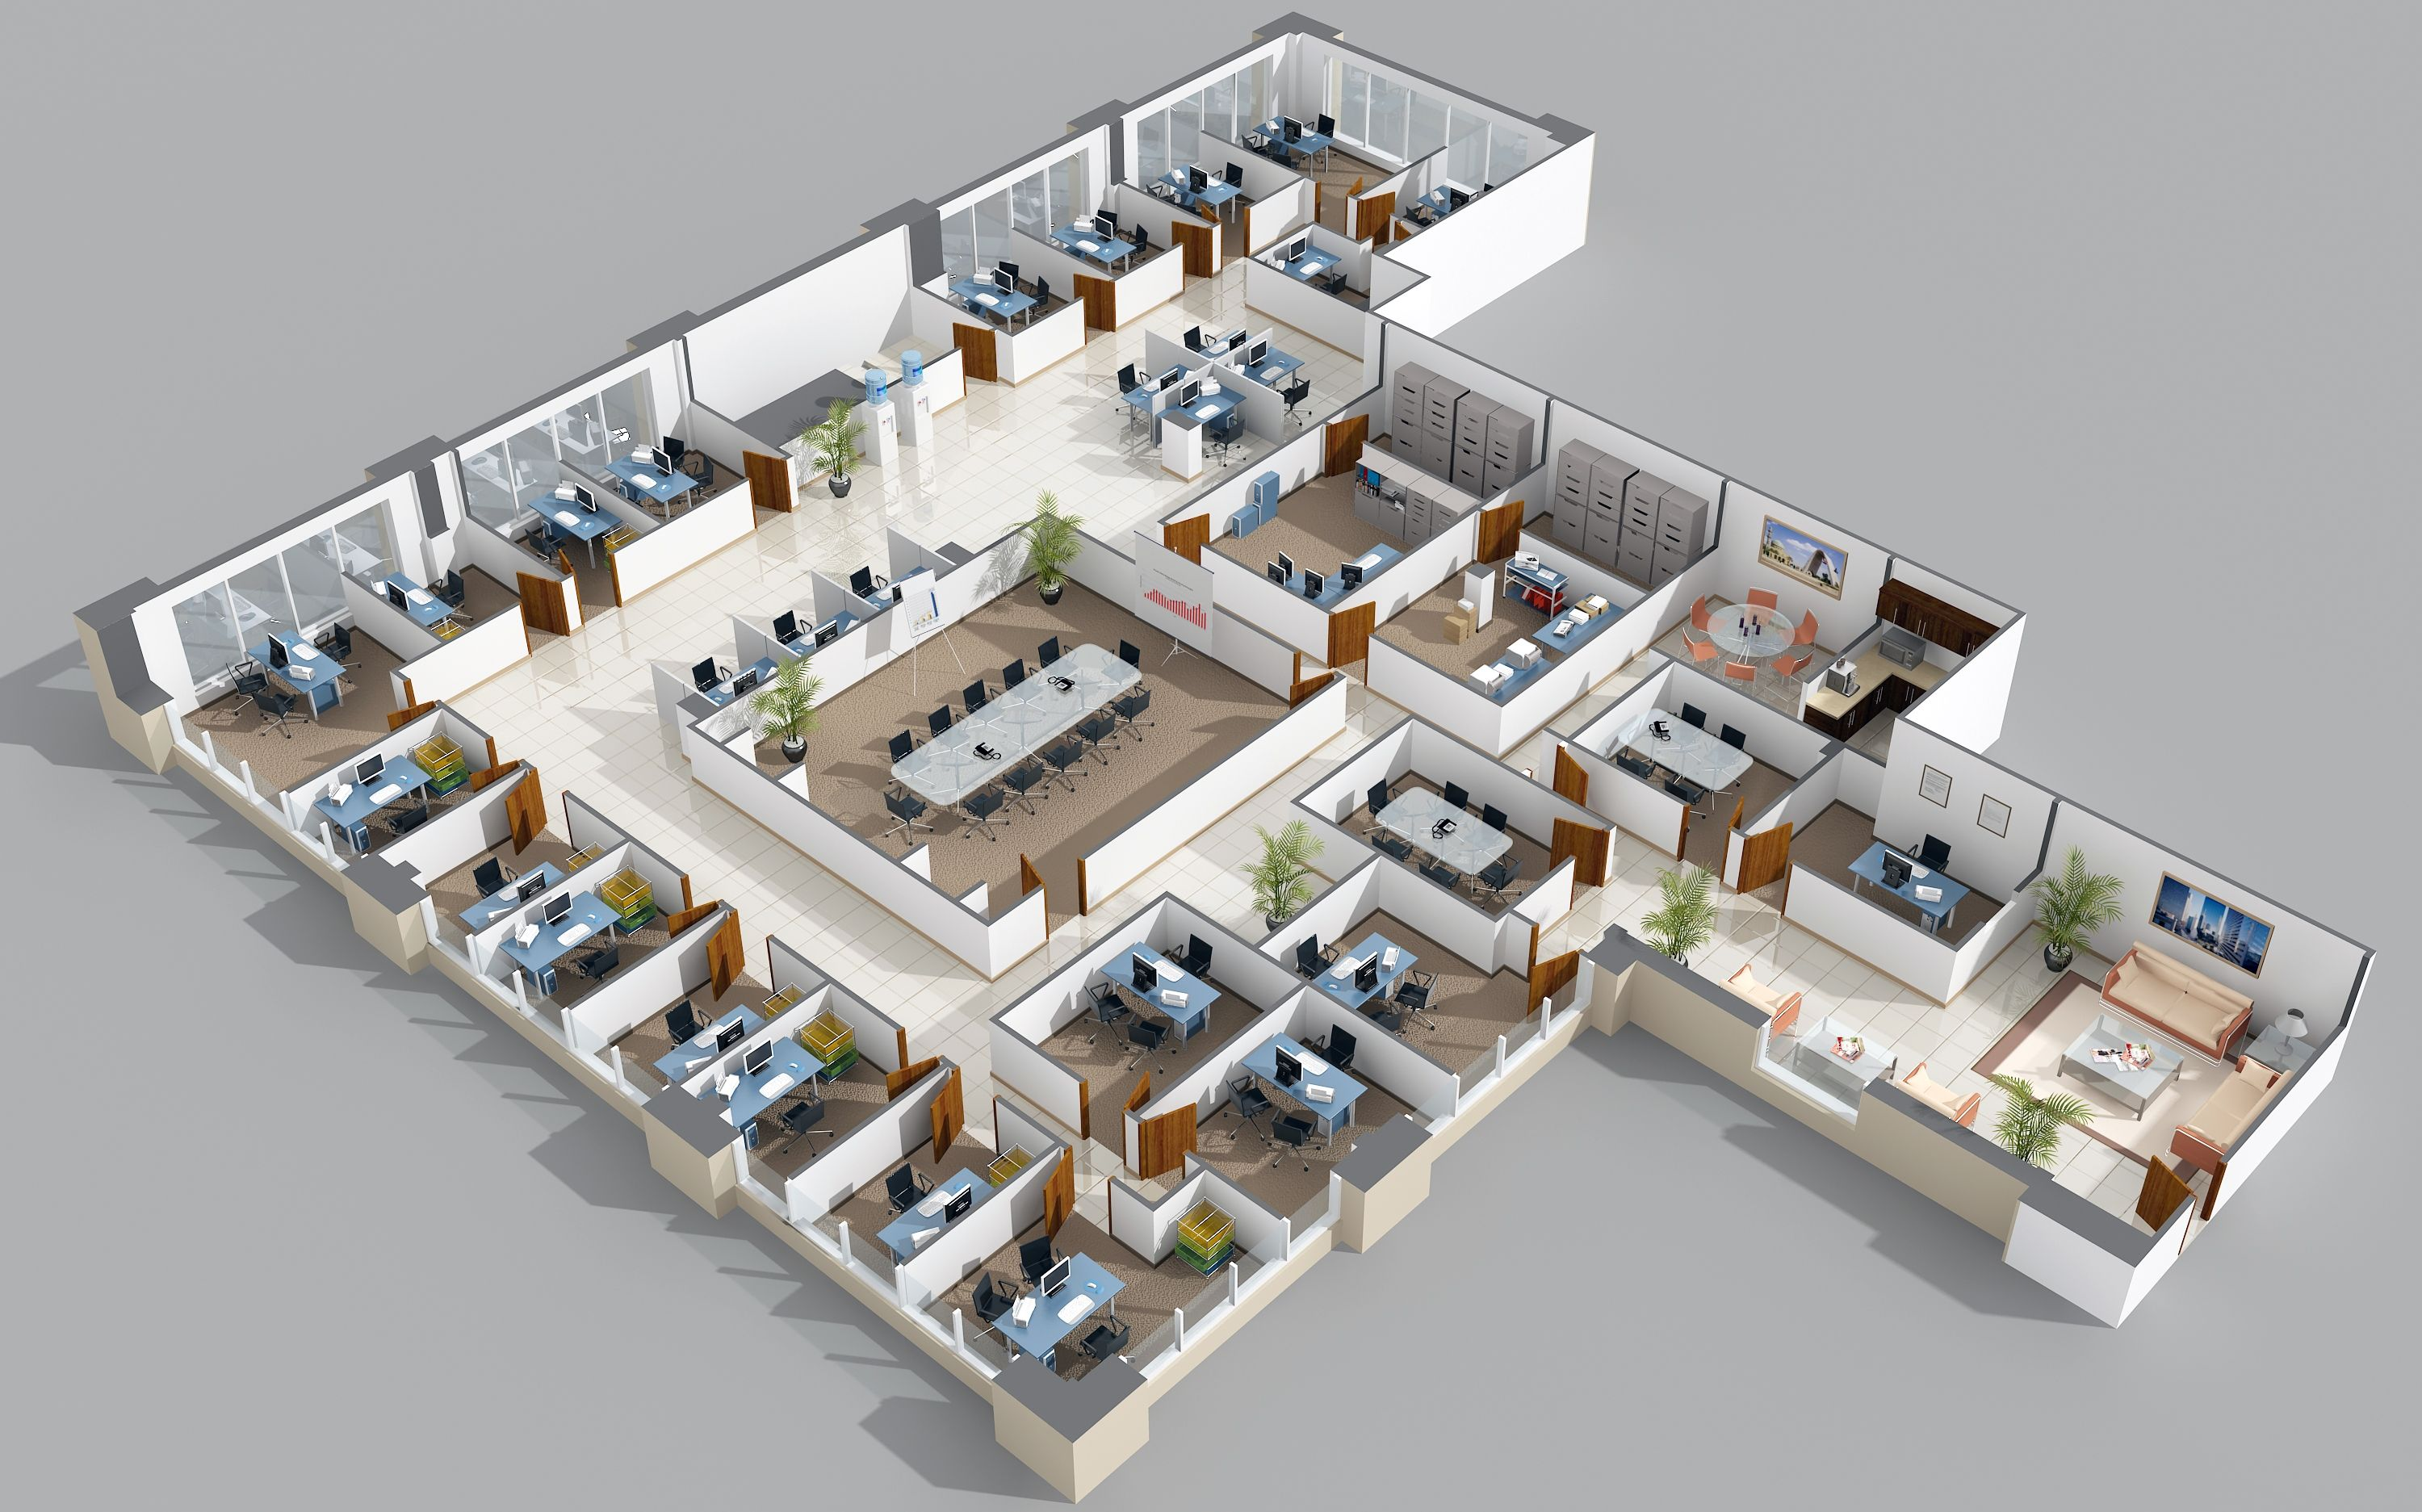 Office layout no doors veritas 99 jean pinterest for 3d floor plan design